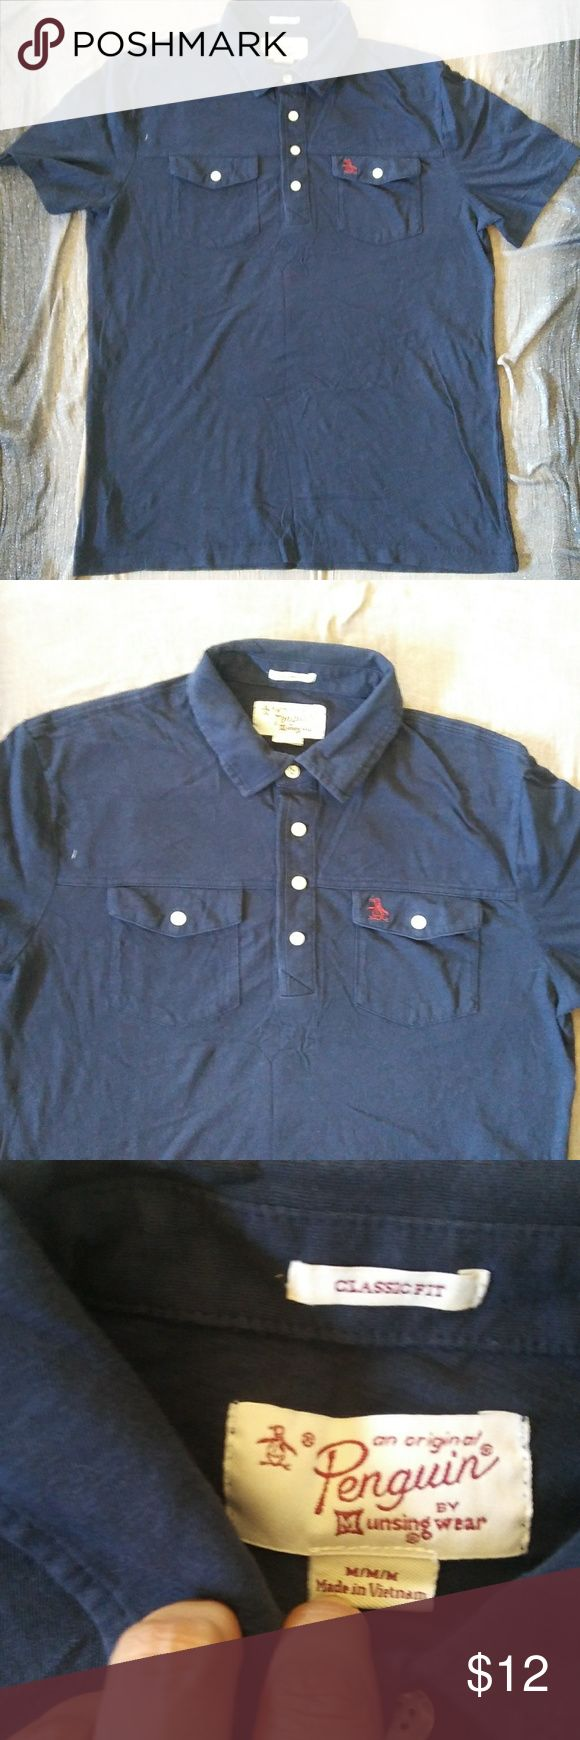 Men's Original Penguin Brand Medium Blue Polo Top Men's Penguin Brand Medium Blue Classic Fit Polo Shirt. No holes. No stains. Not faded. Smoke/Pet. Measures 21 inches from pit to pit. Measures 26 inches from top of shoulder to bottom of shirt. Original Penguin Shirts Polos